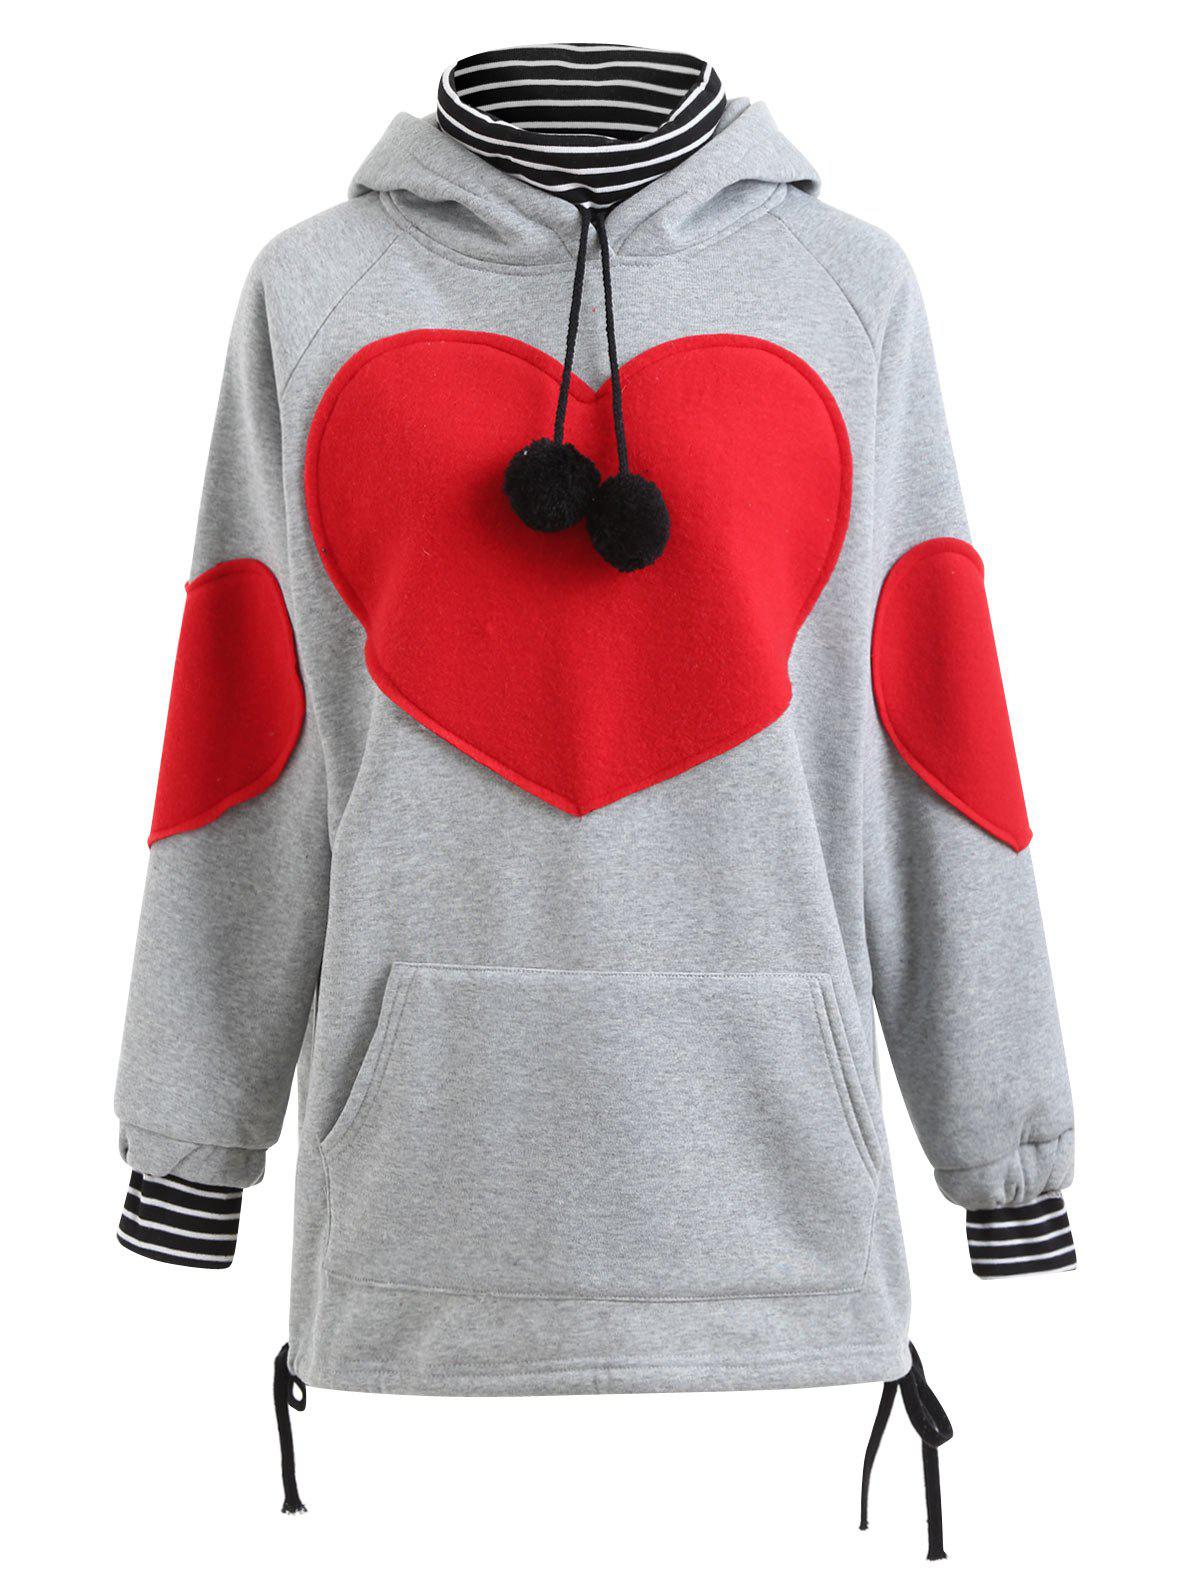 Plus Size Heart Graphic Tunic Hoodie - GRAY 3XL